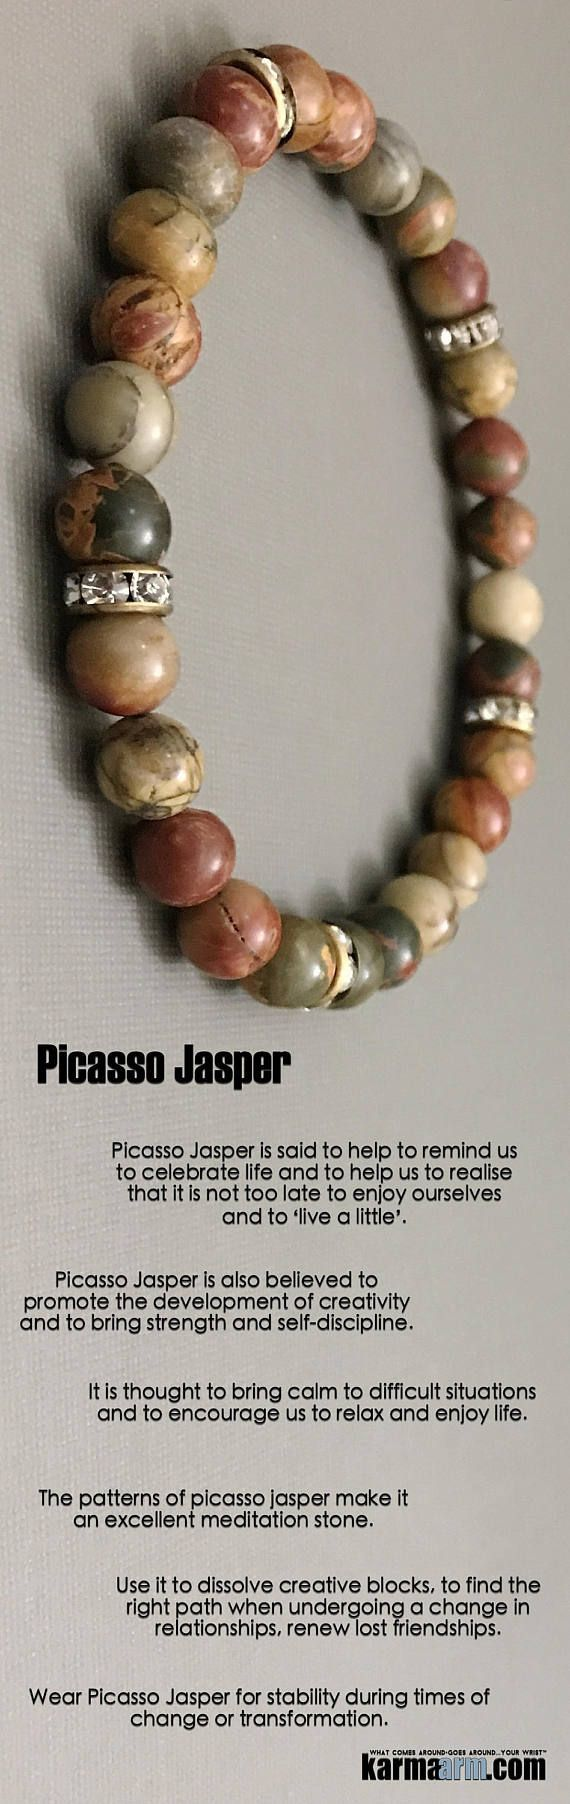 #BEADED #Yoga #BRACELETS ♛ #Picasso Jasper is said to help to remind us to celebrate life and to help us to realize that it is not too late to enjoy ourselves and to 'live a little'. #Mens #Jewelry #Eckhart #Tolle #Crystals #Energy #gifts #Handmade #Healing #Kundalini #Law #Attraction #LOA #Love #Mala #Meditation #prayer #Reiki #mindfulness #wisdom #Fashion #birthday #Spiritual #Buddhist #Tony #Robbins #Gifts #Womens #Reiki